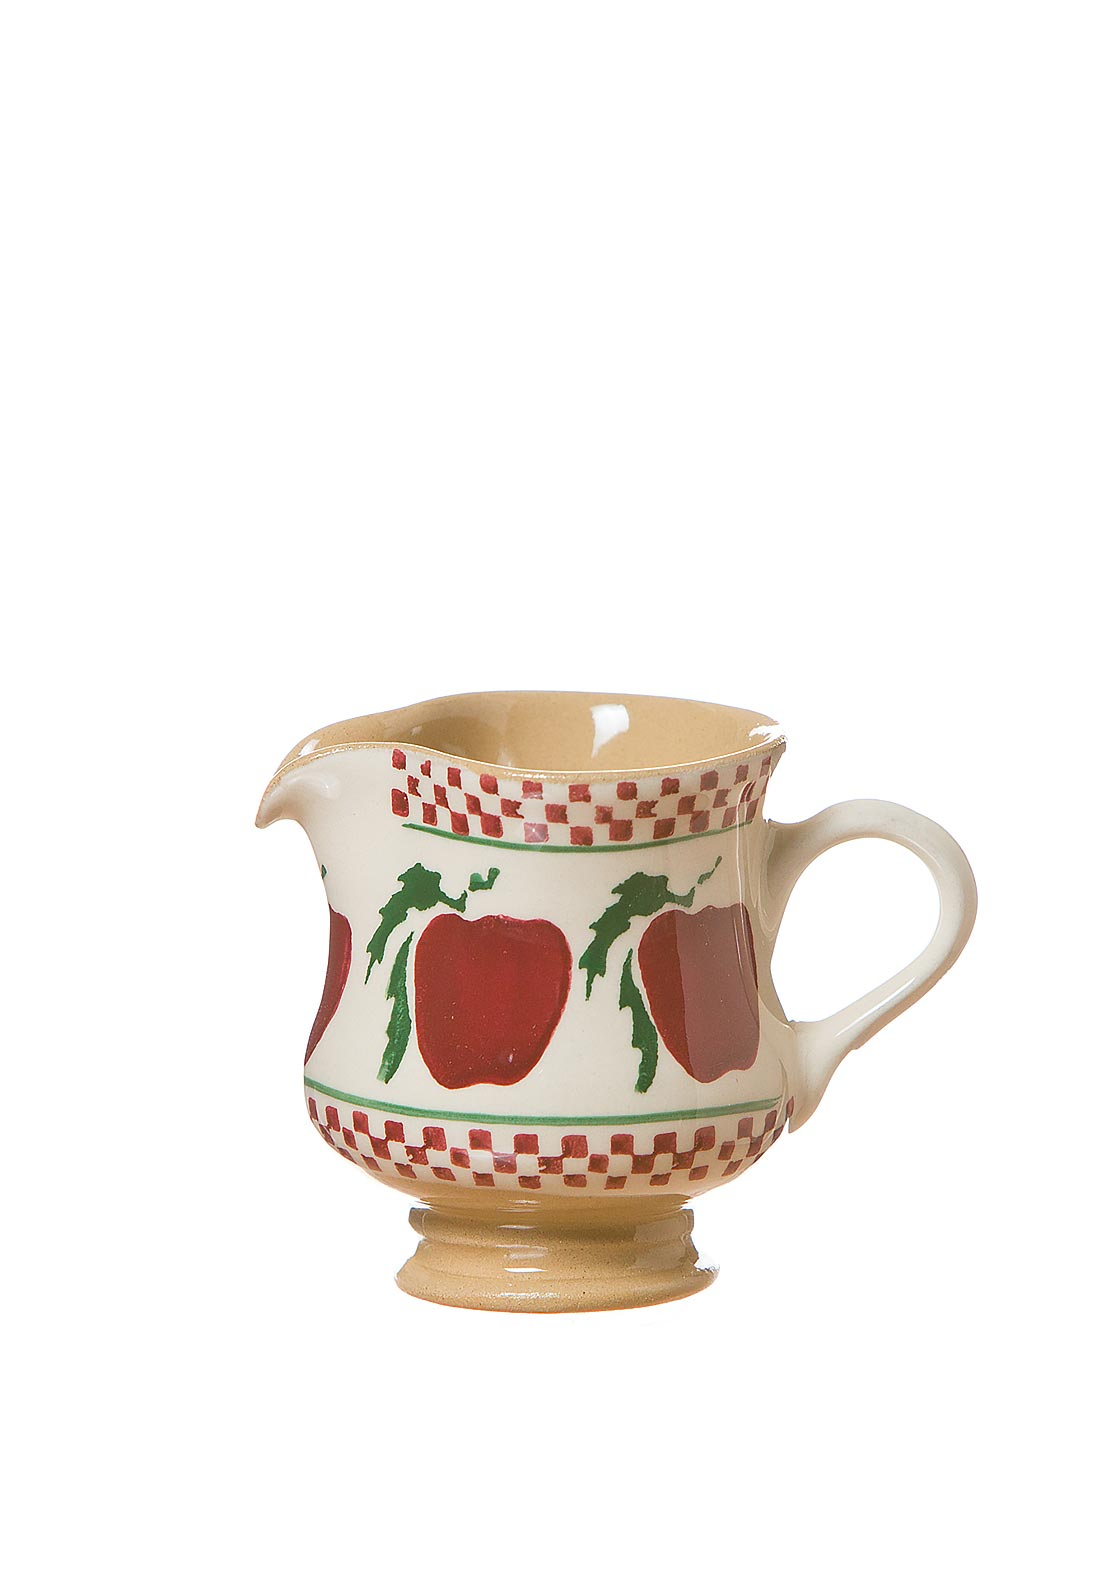 Nicholas Mosse Pottery Apple Cyclinder Jug, Small